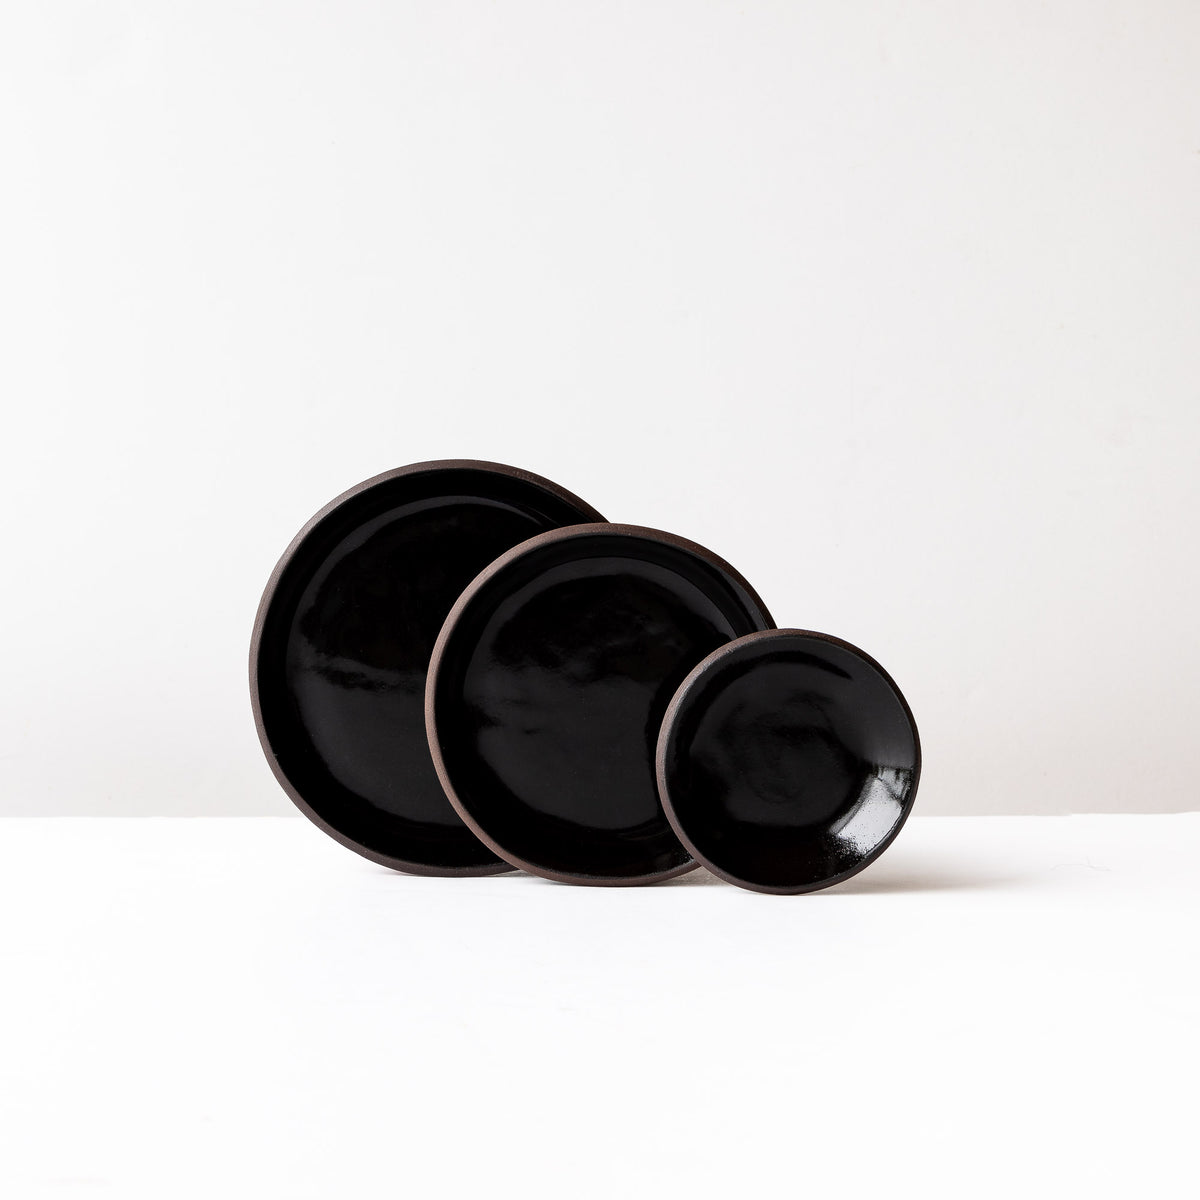 Three Handmade Saucers in Black Lacquered Stoneware - Sold by Chic & Basta